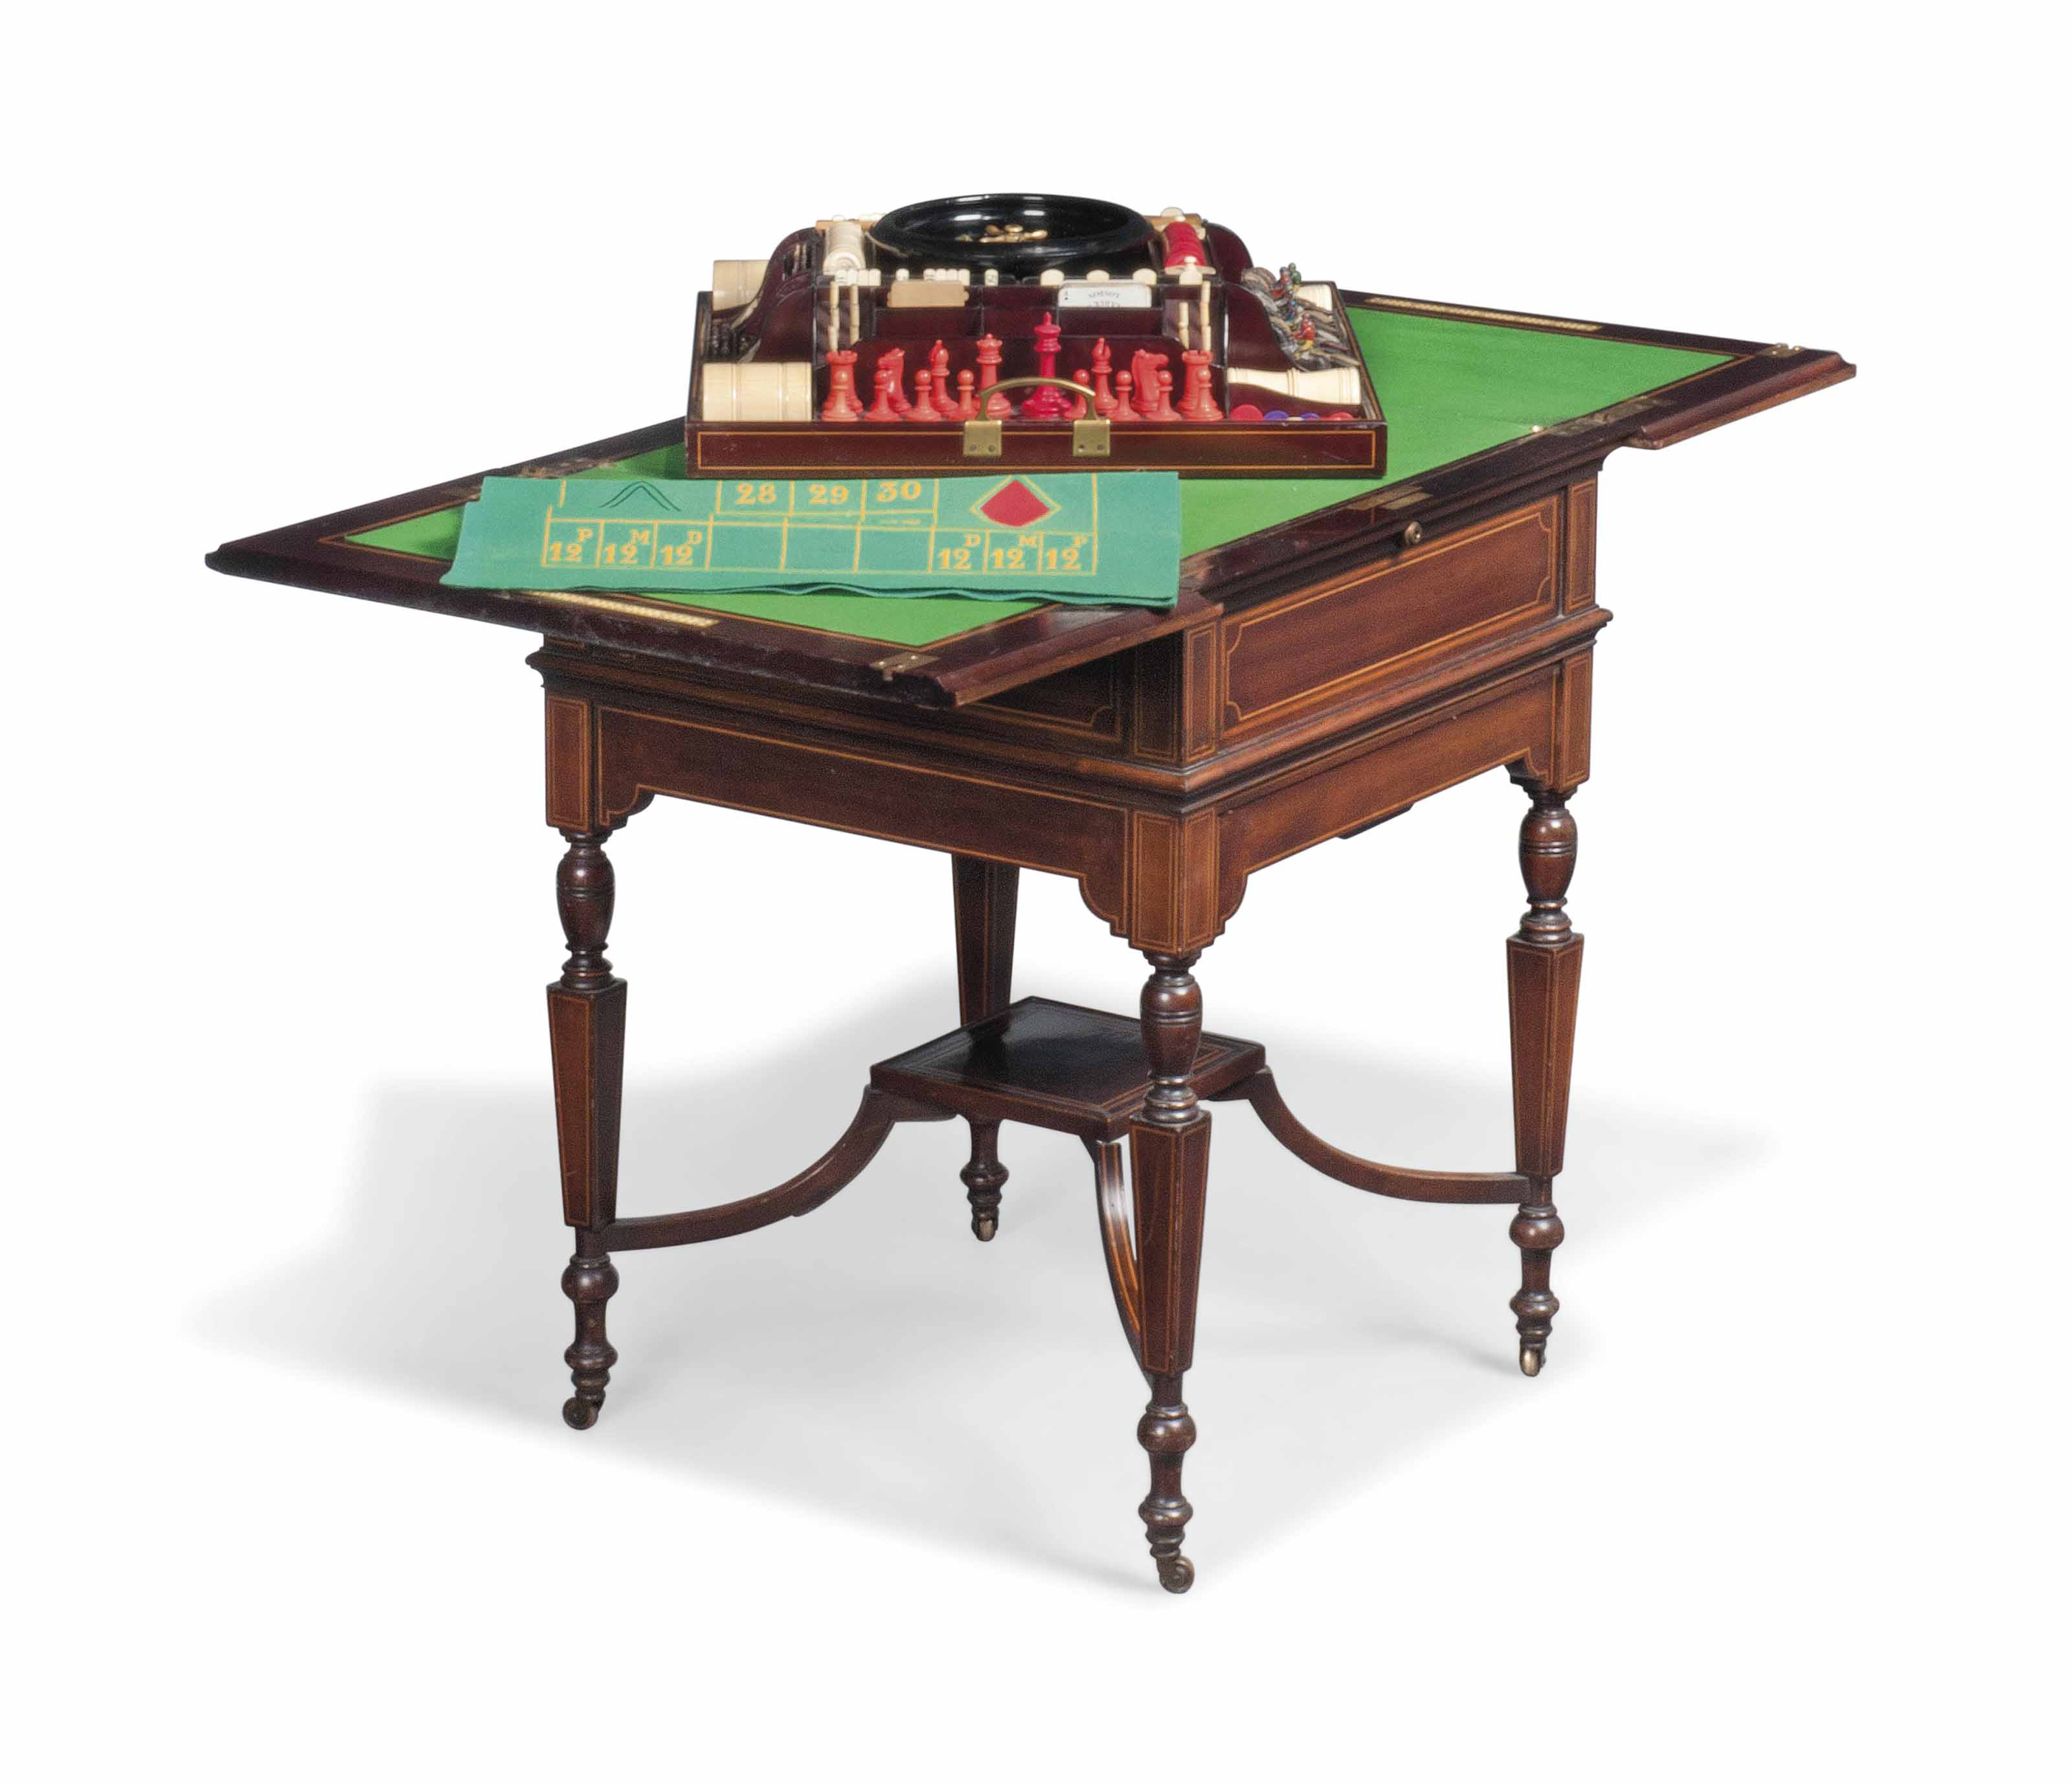 A LATE VICTORIAN MAHOGANY AND SATINWOOD BANDED MULTI-GAMES TABLE